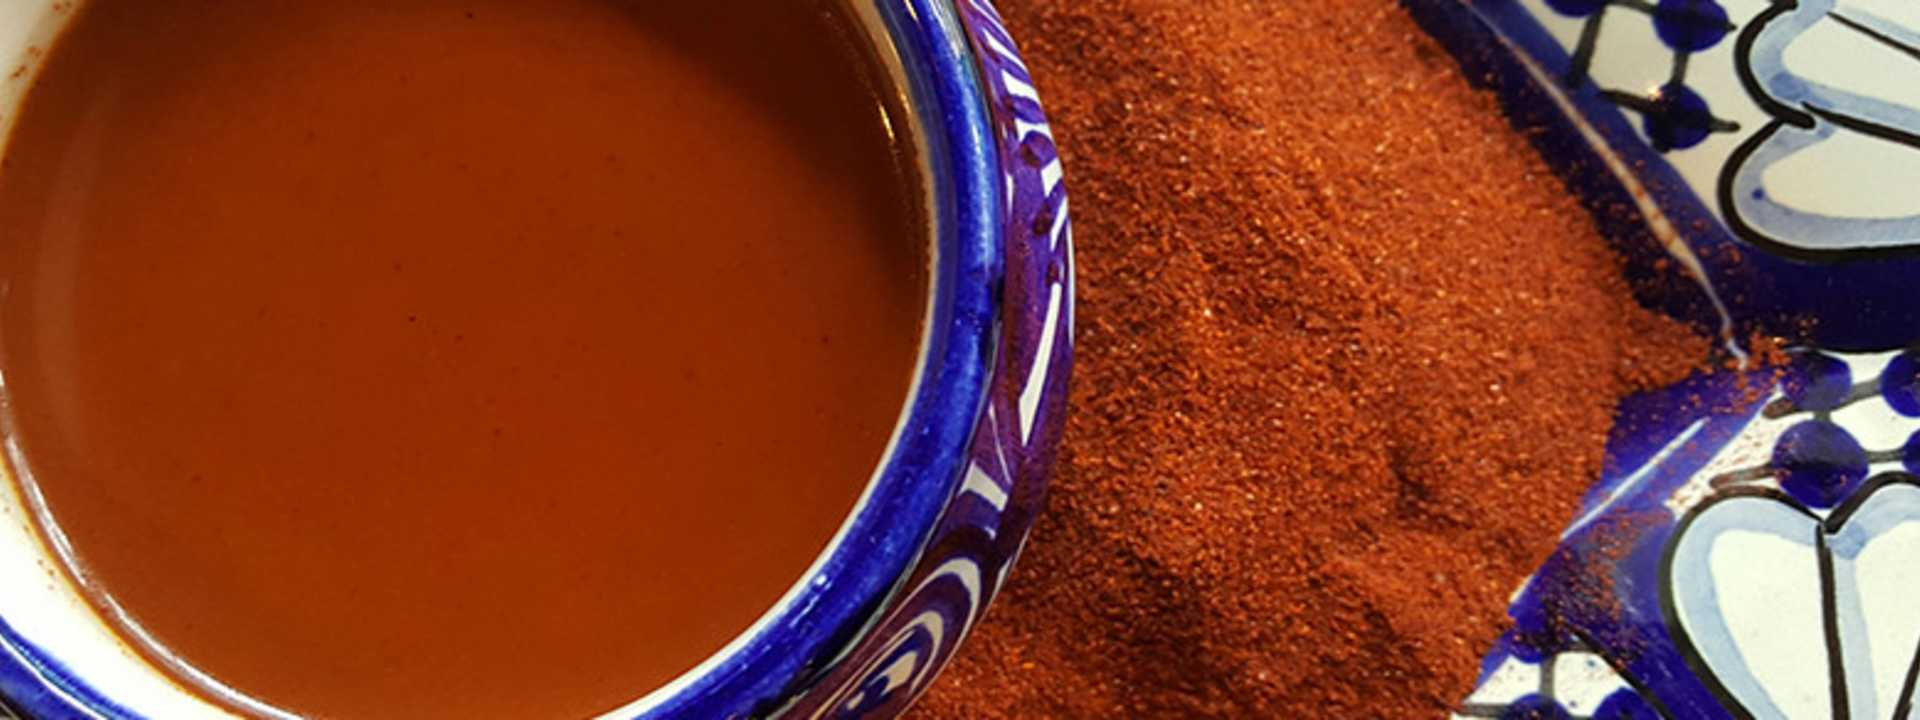 A batch of red chili cocoa elixir from Kakawa Chocolate House in Santa Fe